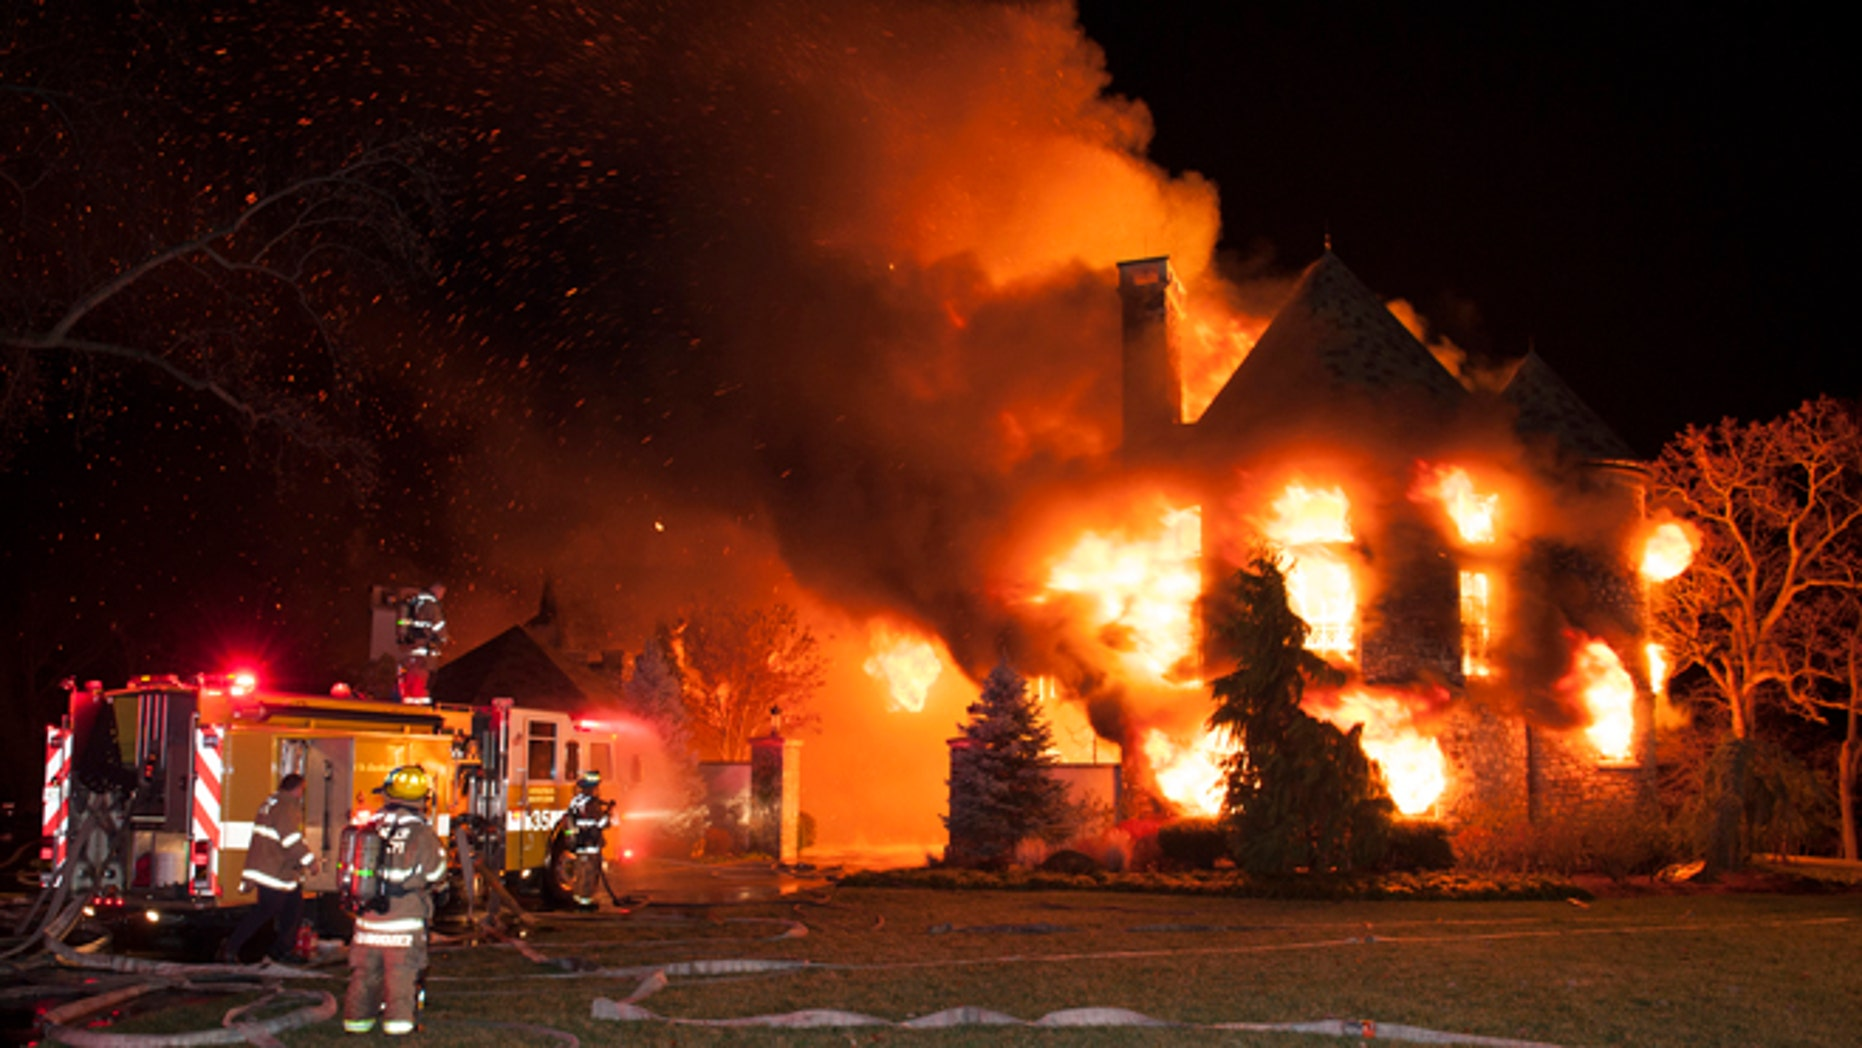 Jan. 19, 2015: Firefighters battle a four-alarm fire at a home on Childs Point Road in Annapolis, Md. The occupants of the home were unaccounted for and fire officials were investigating.